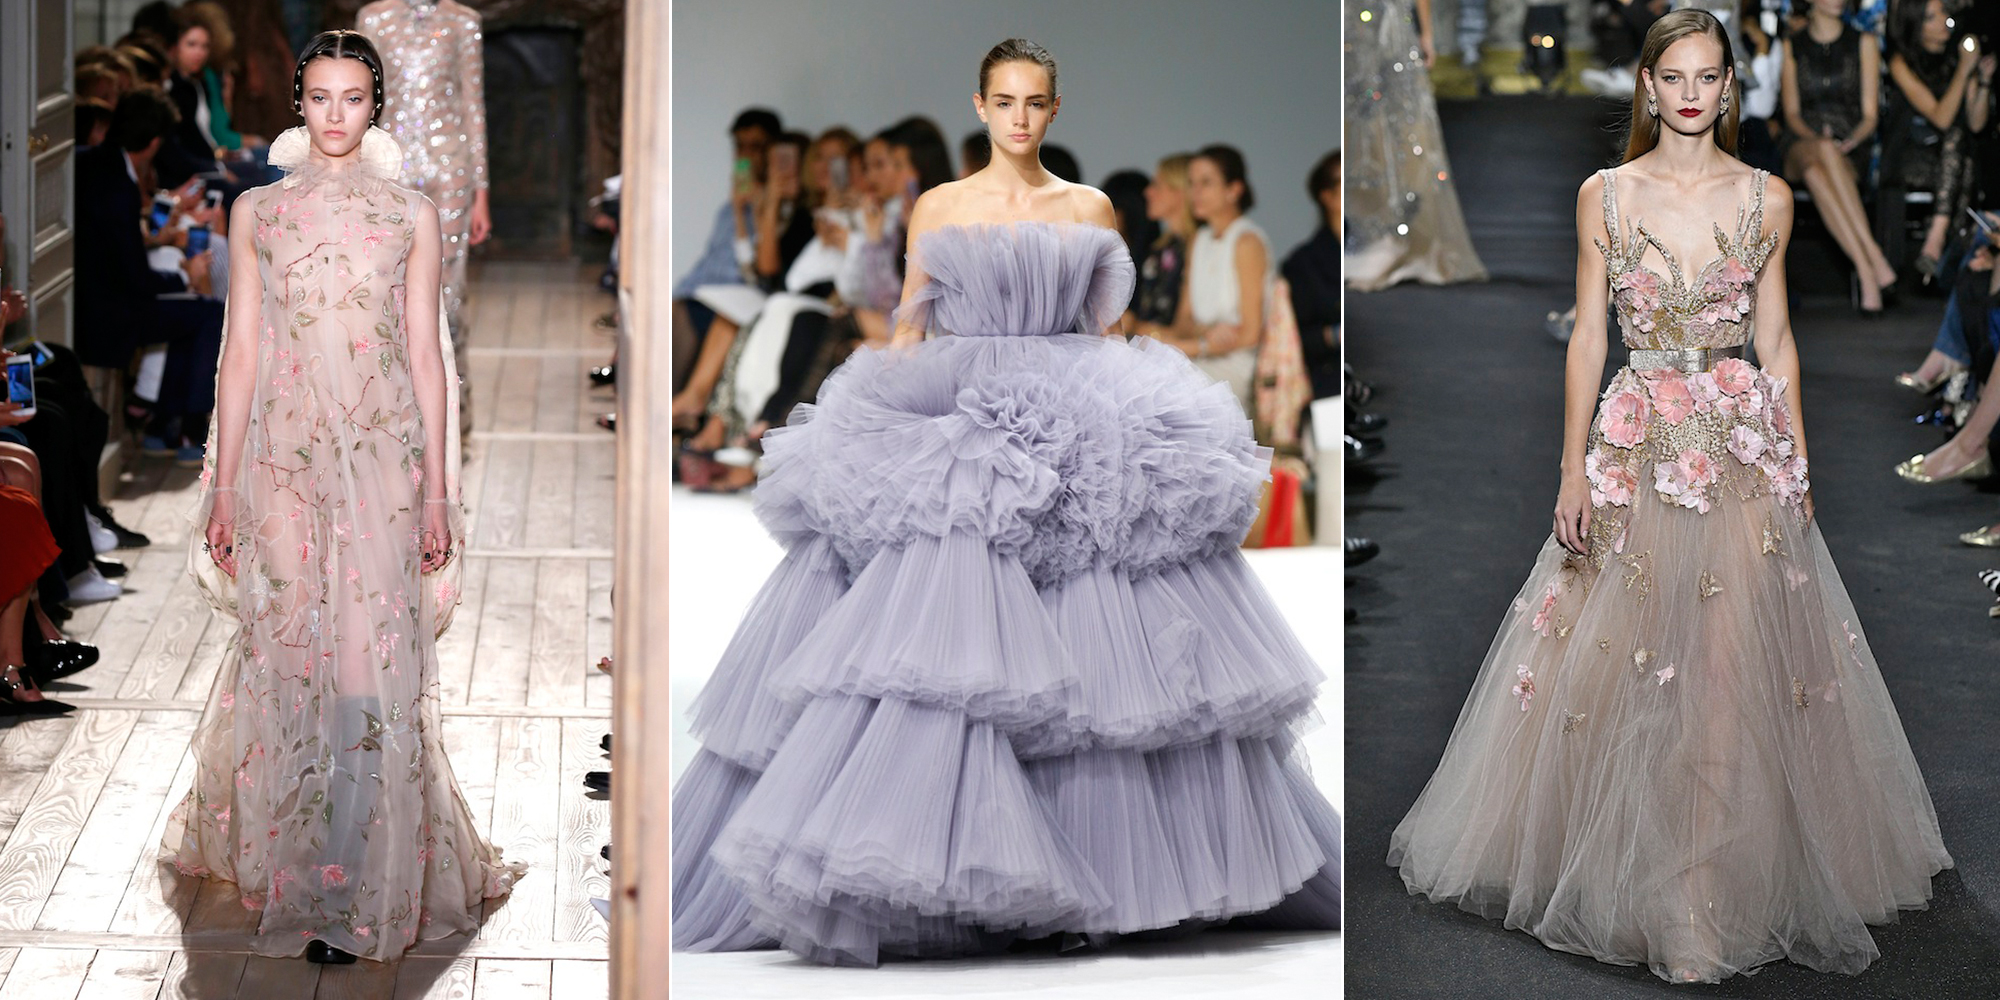 Wedding dress inspiration from haute couture fashion week aw16 for Haute couture style